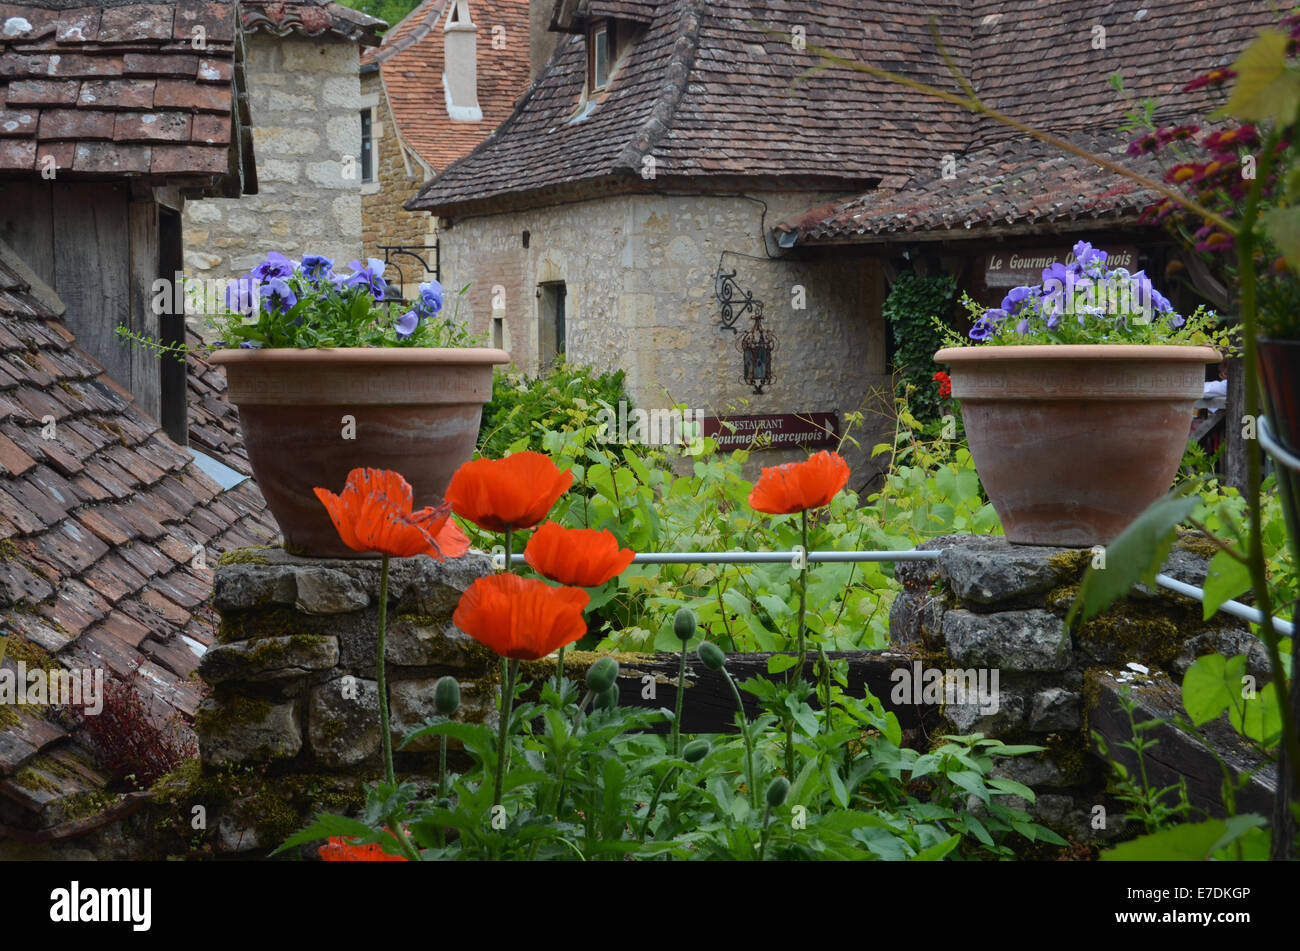 Saint-Cirq-Lapopie, Lot Department, SW France 2014 - Stock Image